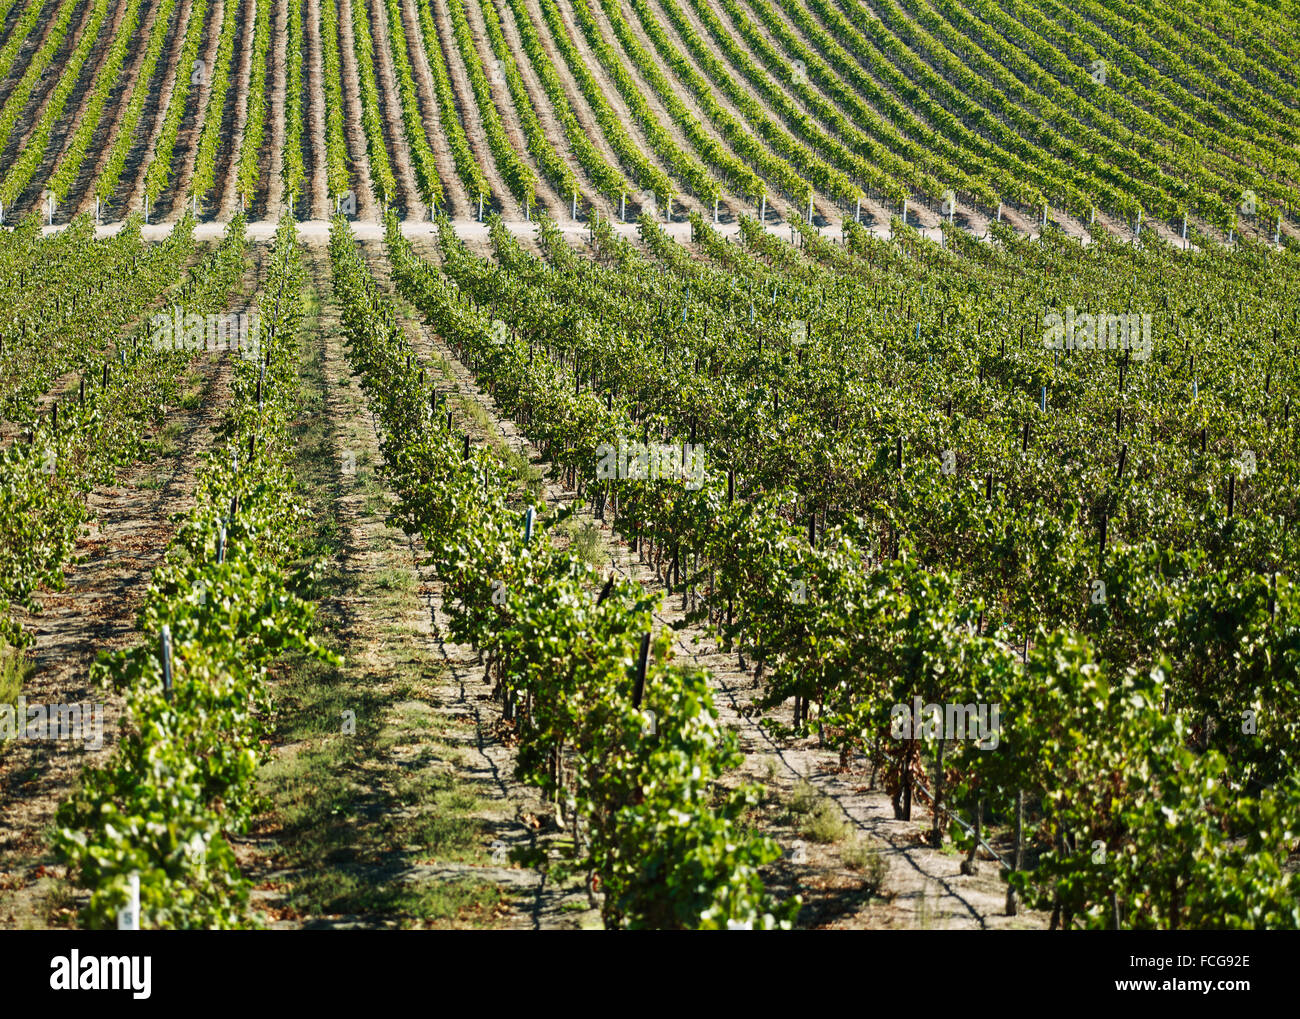 A large vineyard in Northern California, with long rows of healthy grapevines extending off into the distance - Stock Image